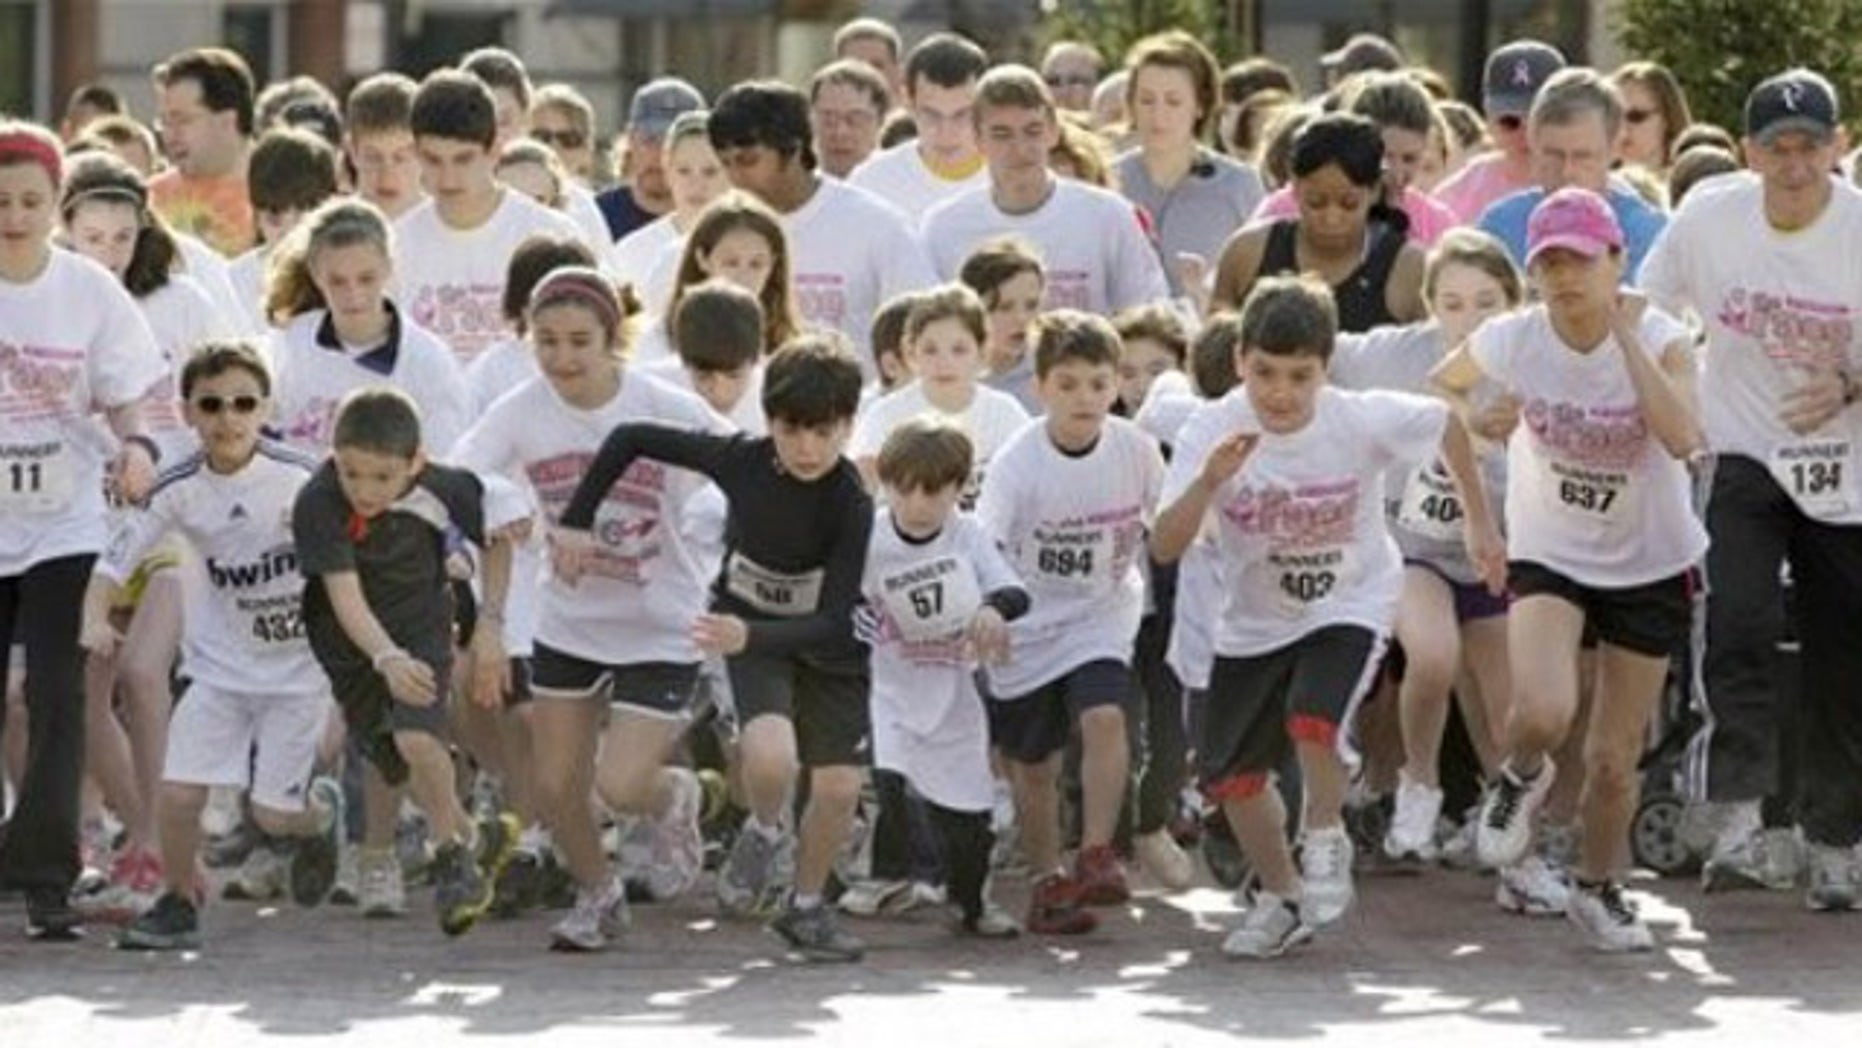 Shown here is the start of a race to benefit Susan G. Komen for the Cure and another cancer-fighting group in Lyndhurst, Ohio, on May 8.